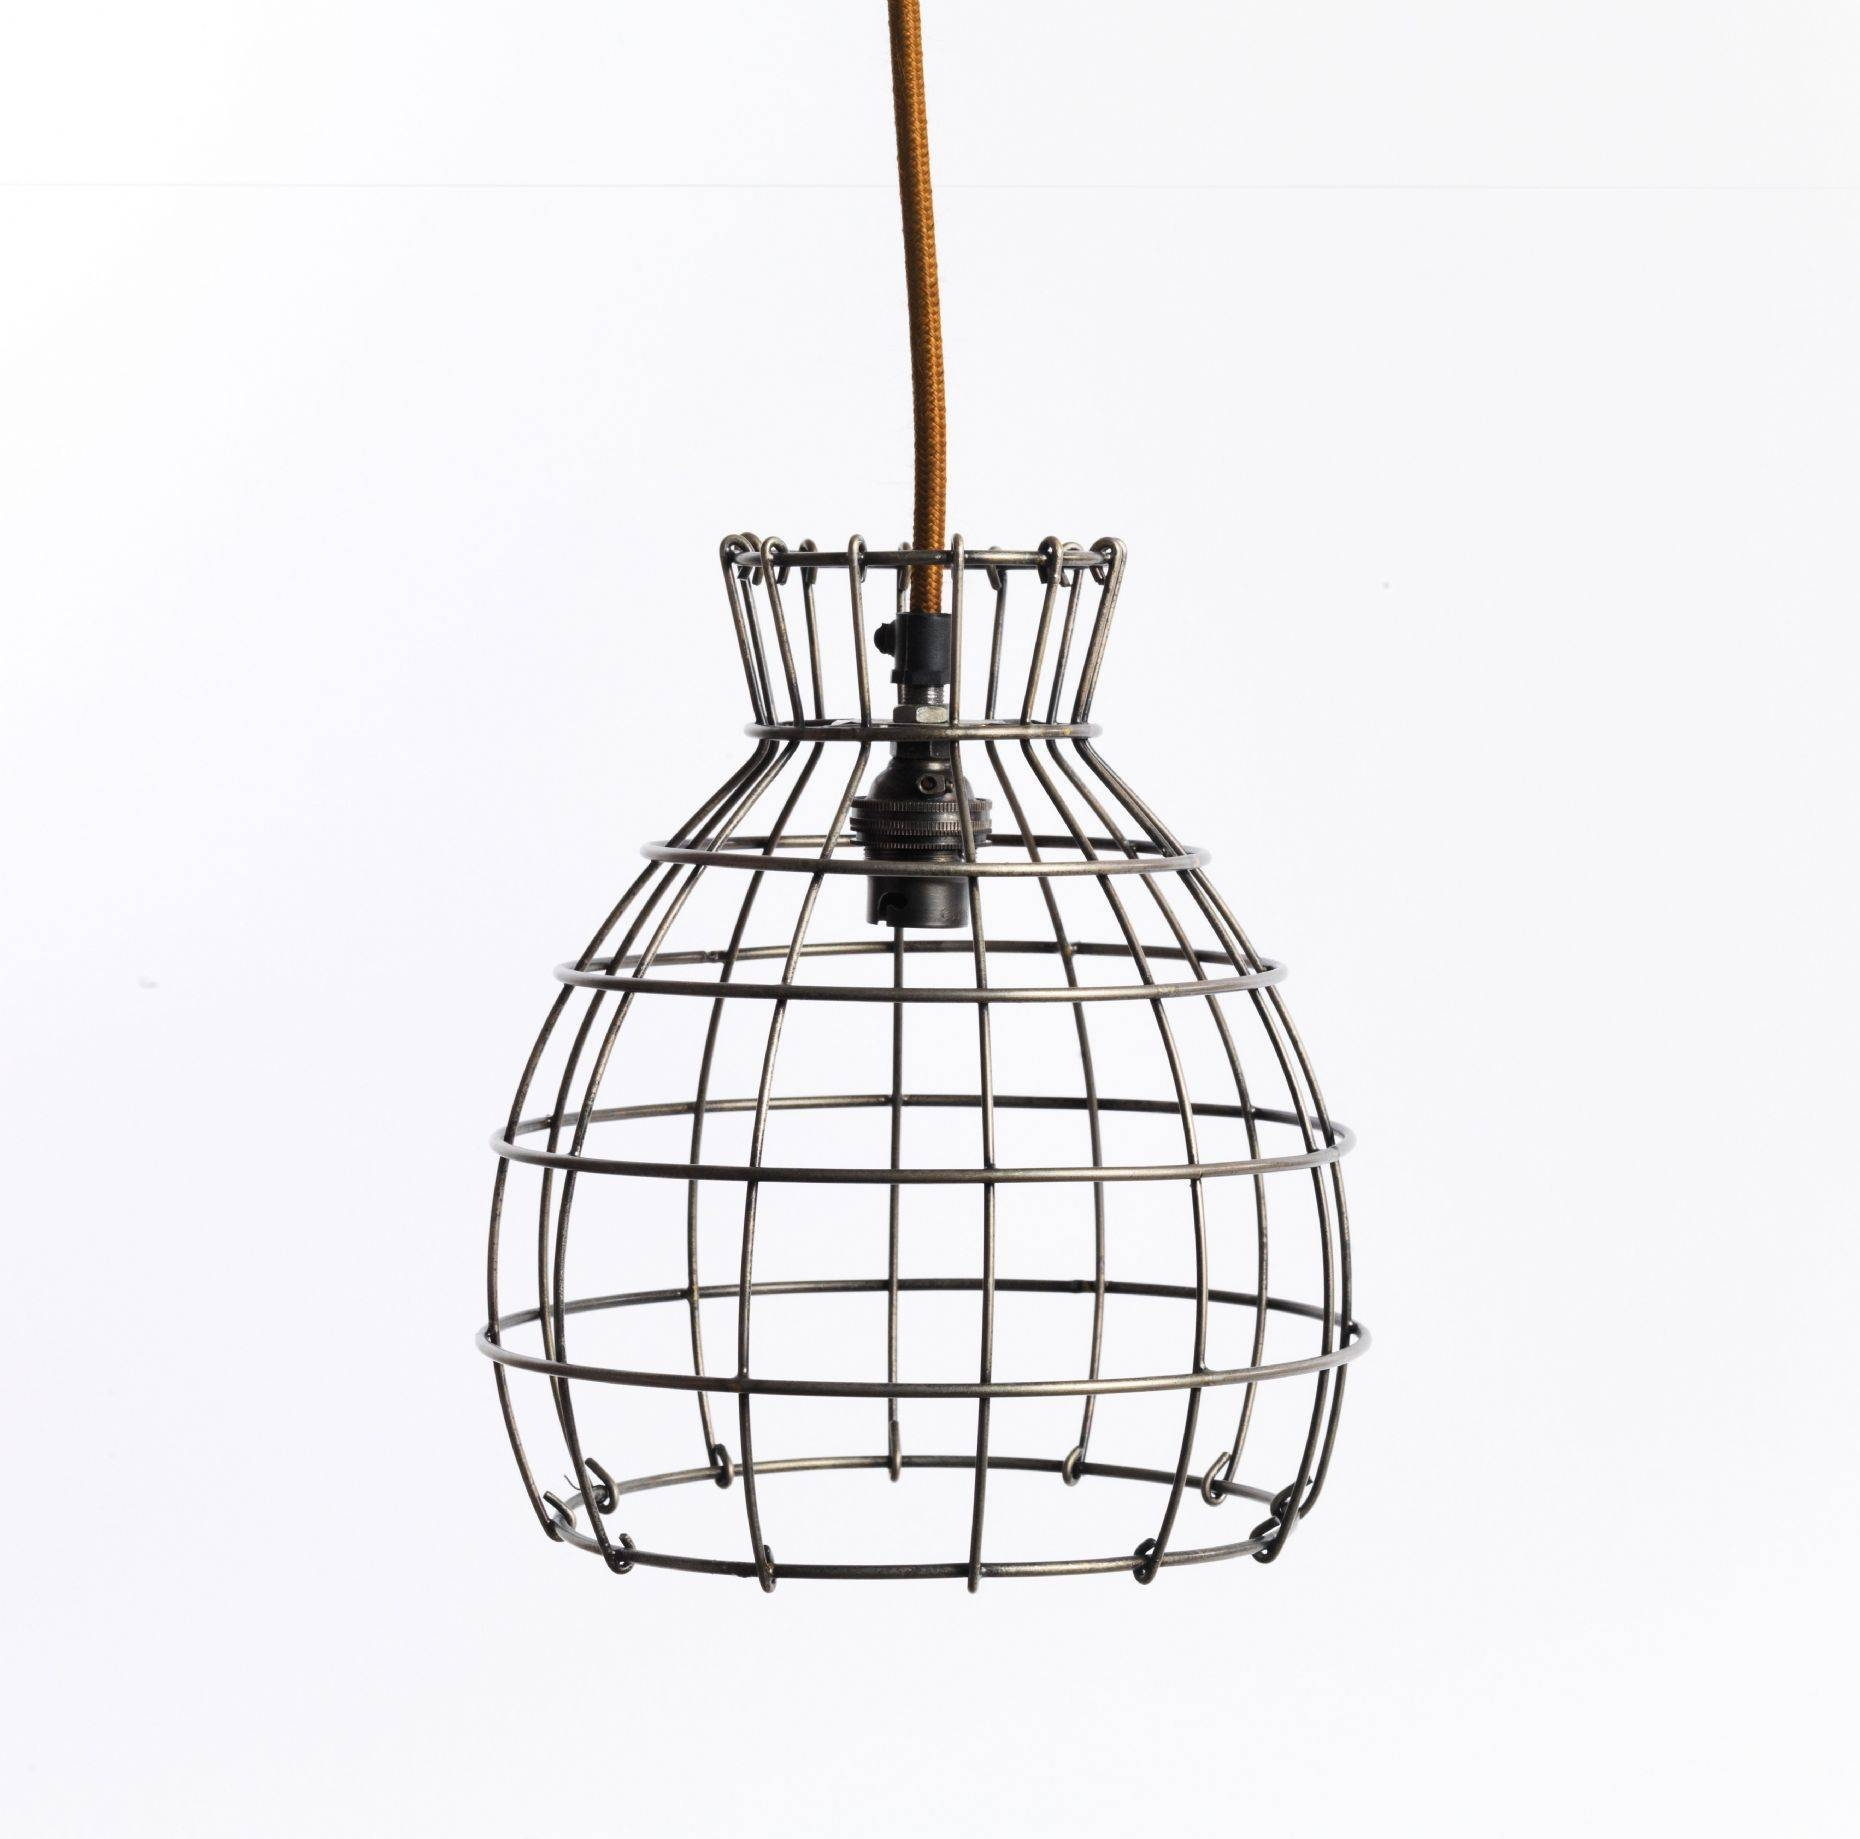 Gorgeous Wire Pendant Light In House Decorating Plan Light Wire intended for Chicken Wire Pendant Lights (Image 8 of 15)